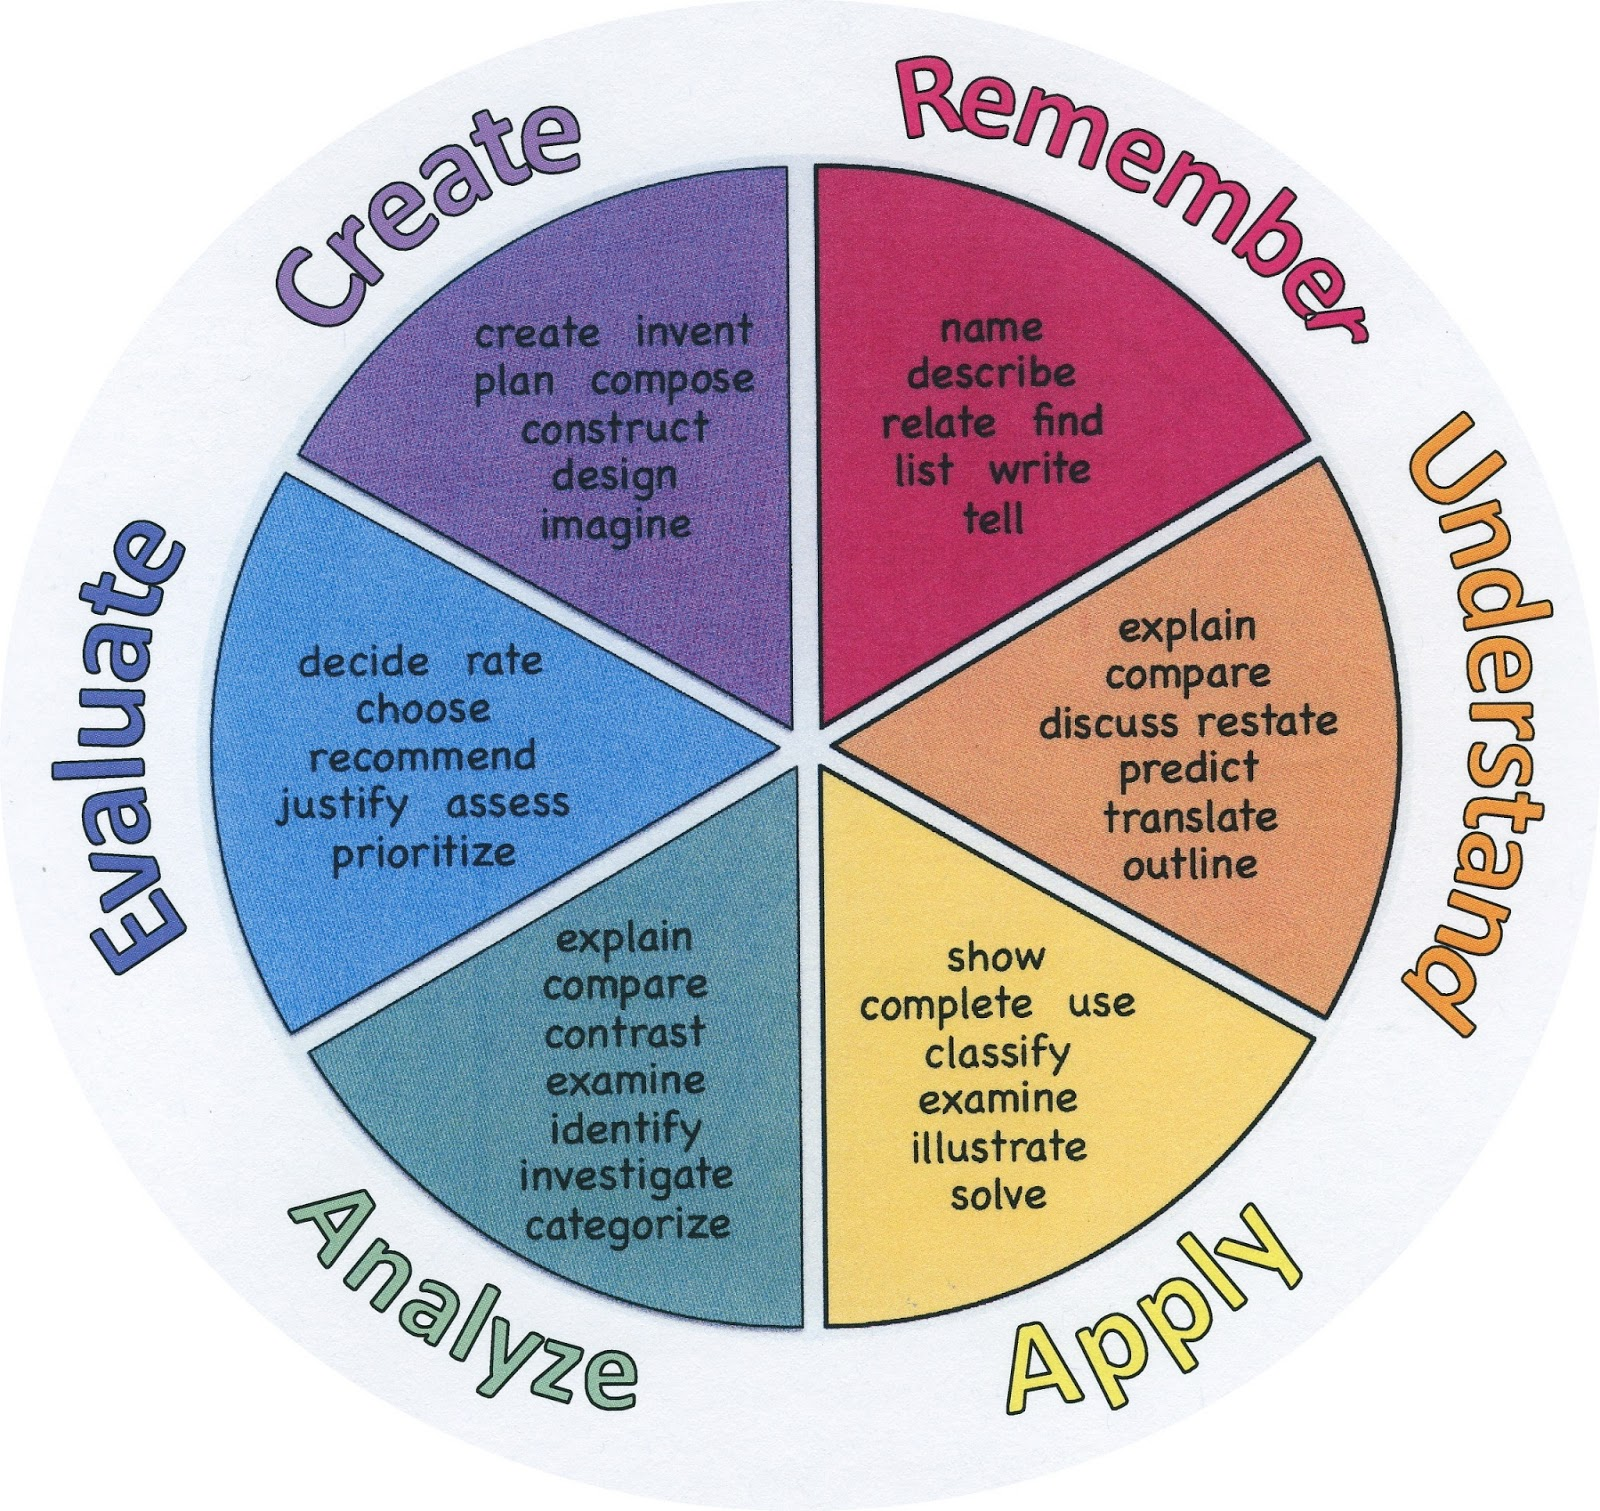 Bloom S Taxonomy Assignment